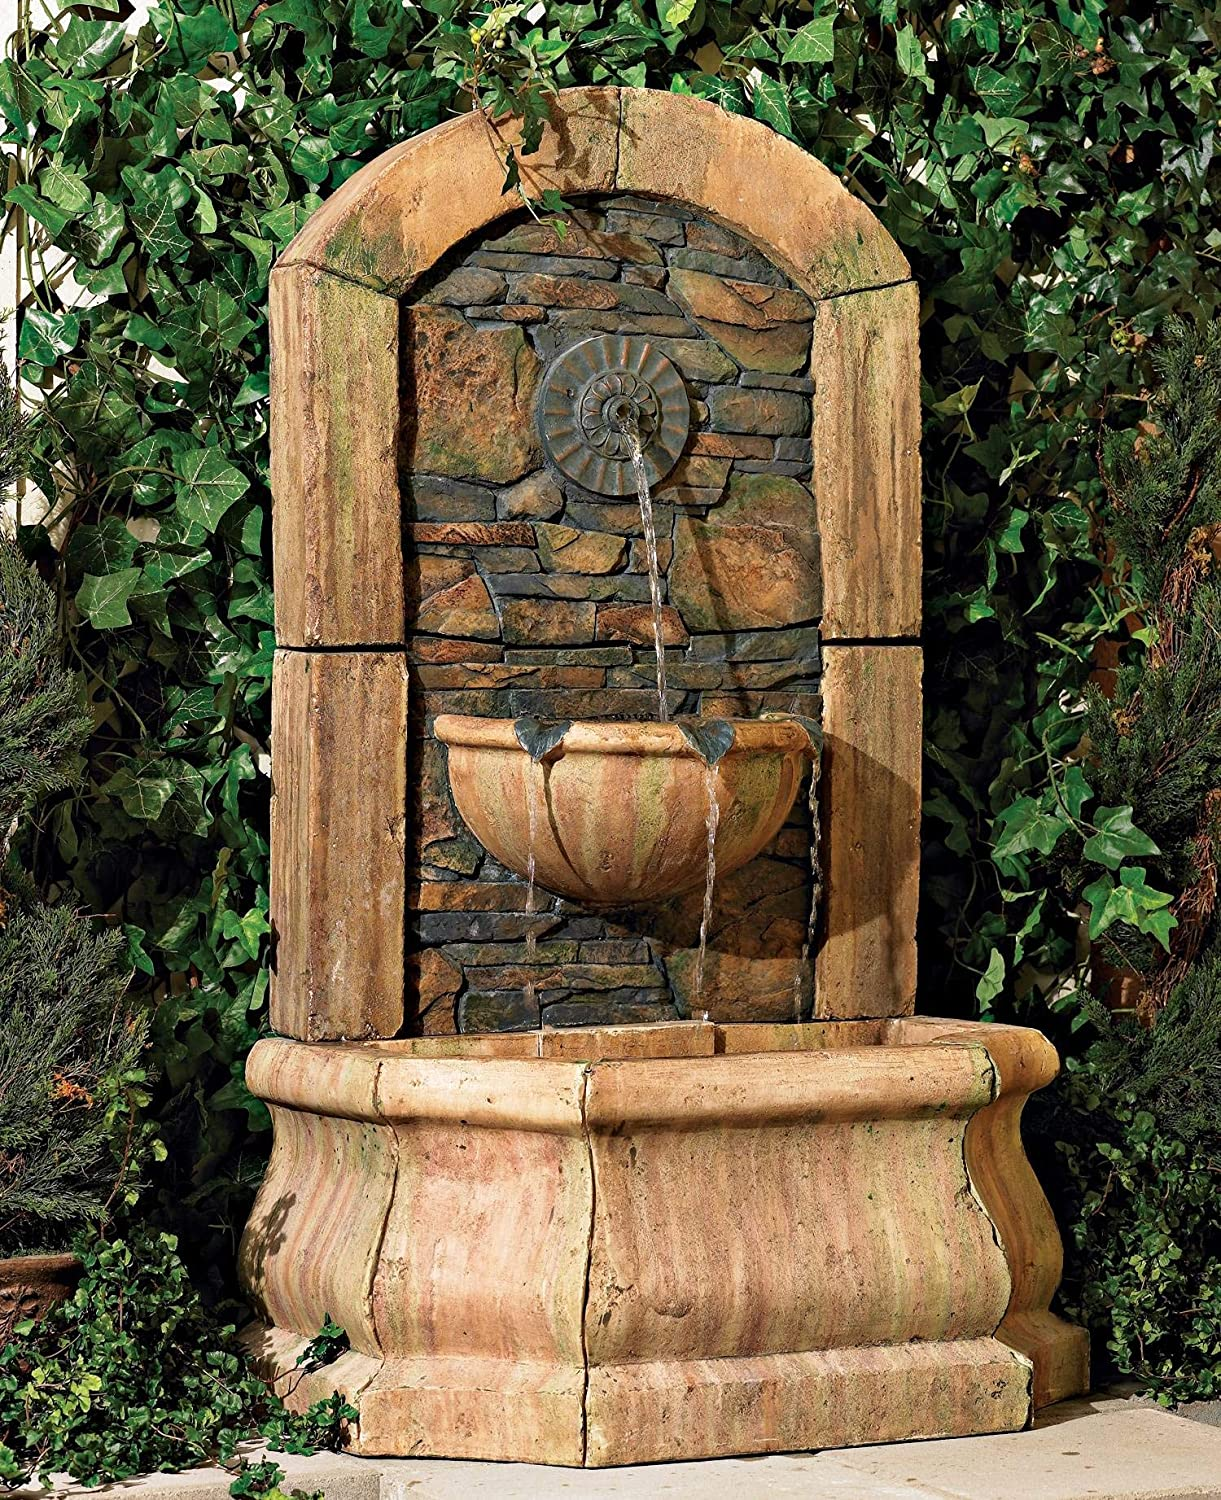 "Serena Rustic Outdoor Wall Water Fountain 50"" High Tiered Tuscan Village for Yard Garden Patio Deck Home - John Timberland"